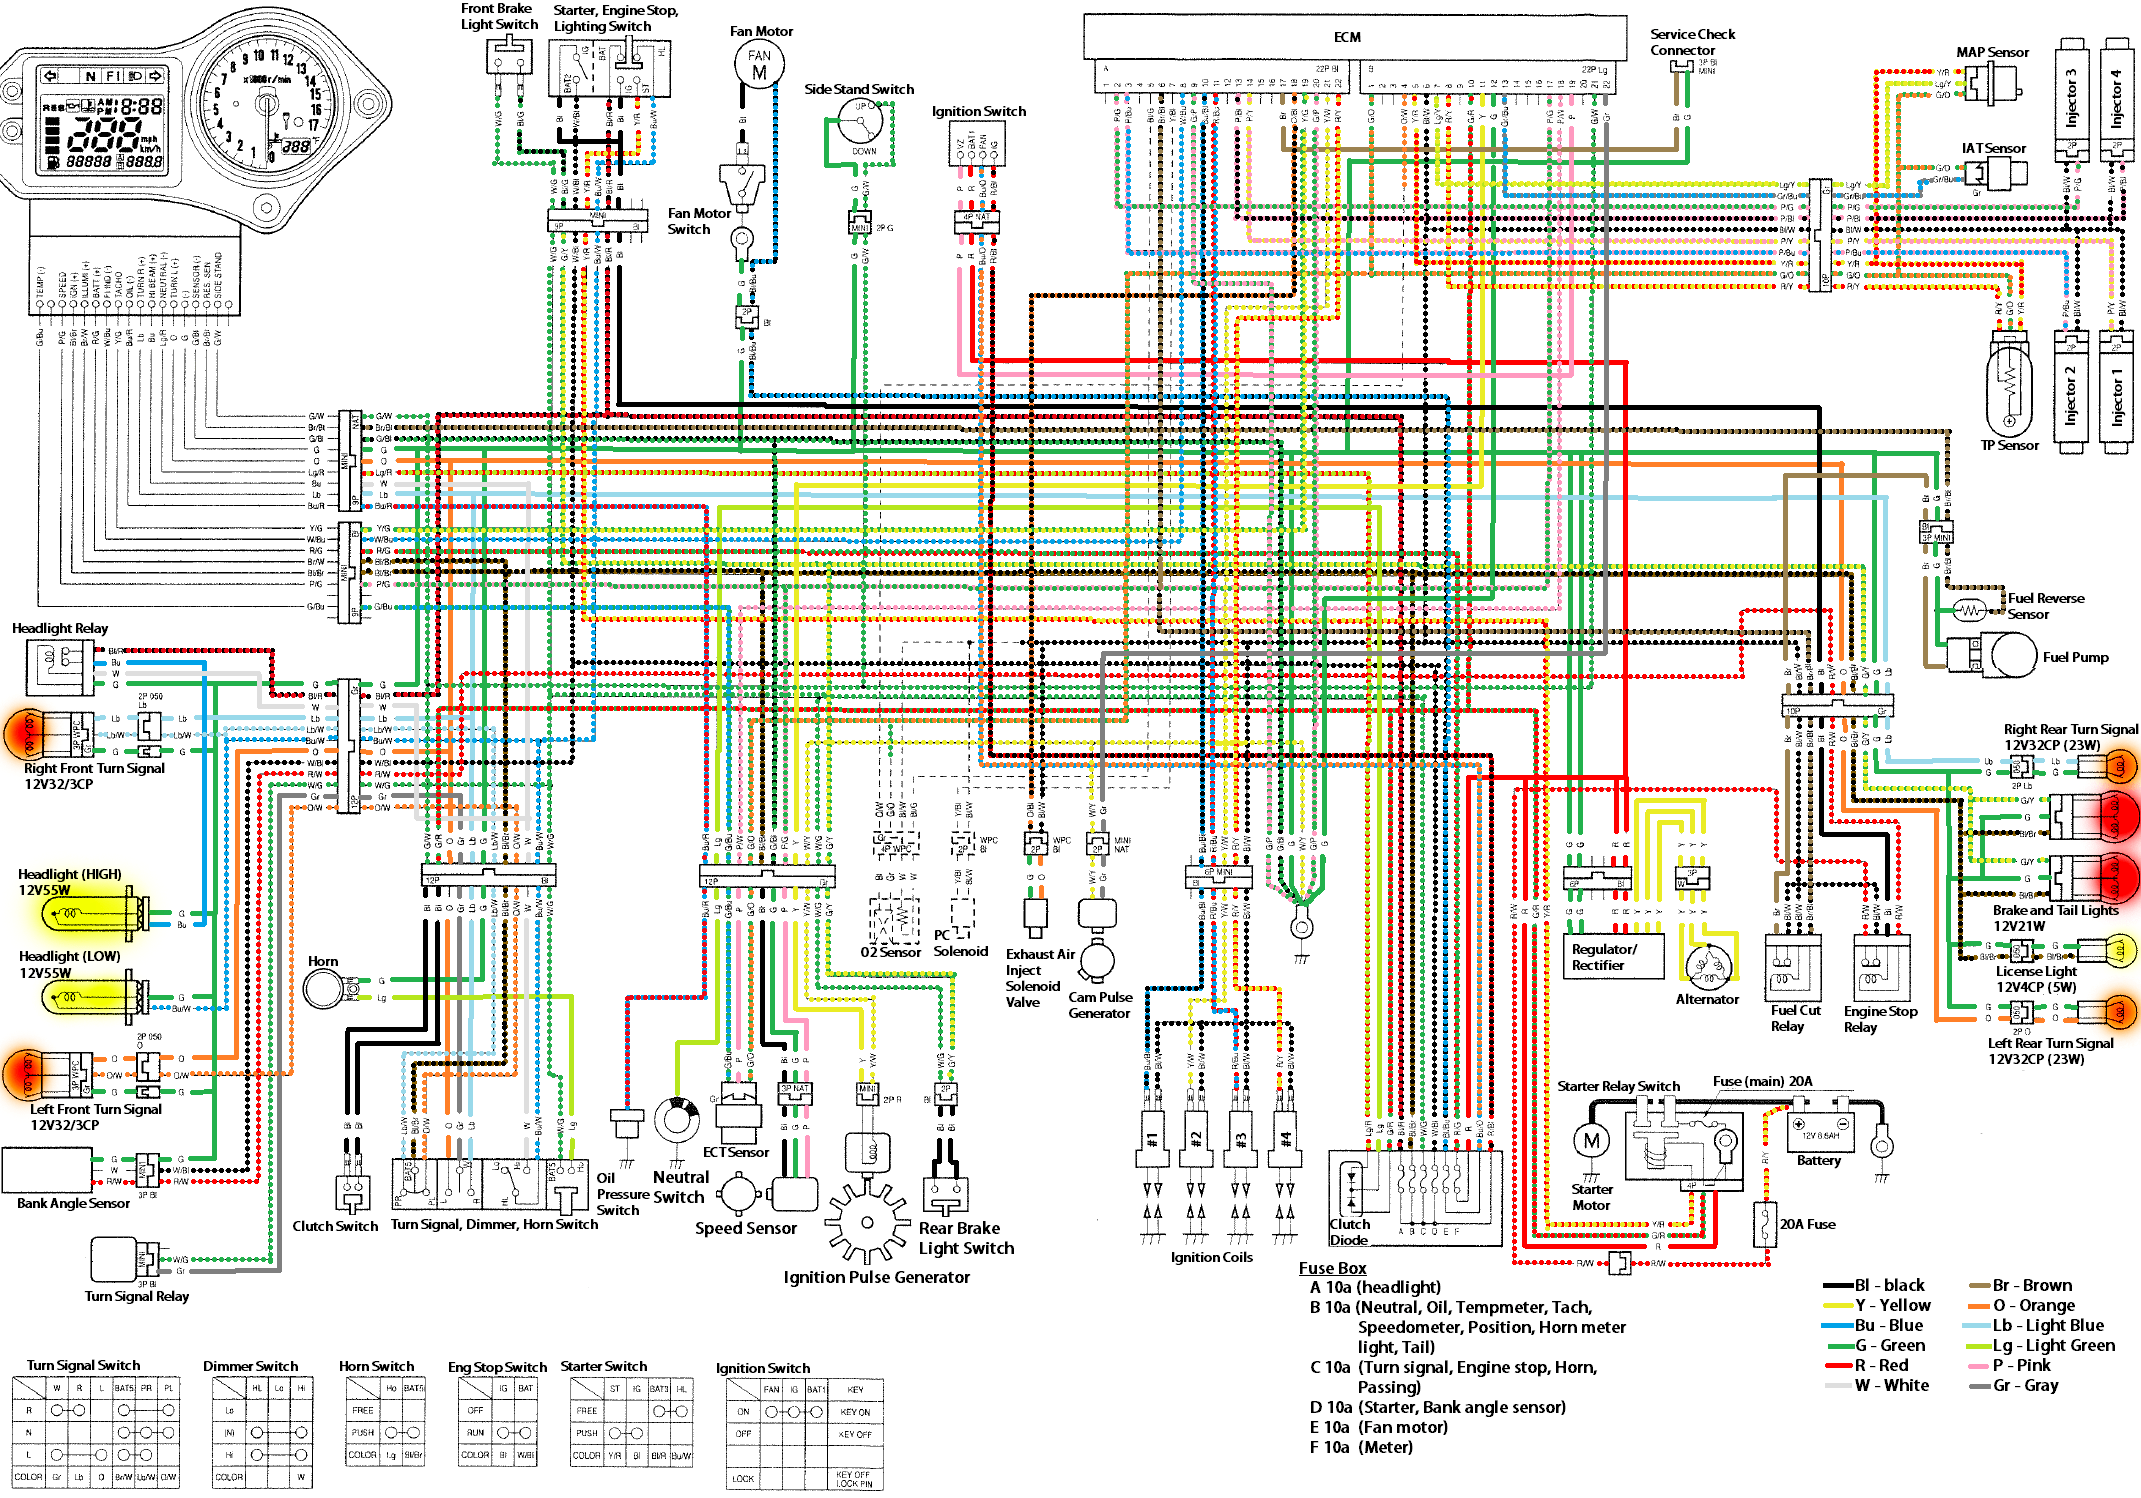 Magnum Cb Radio Microphone Wiring Diagram Free Download Wiring